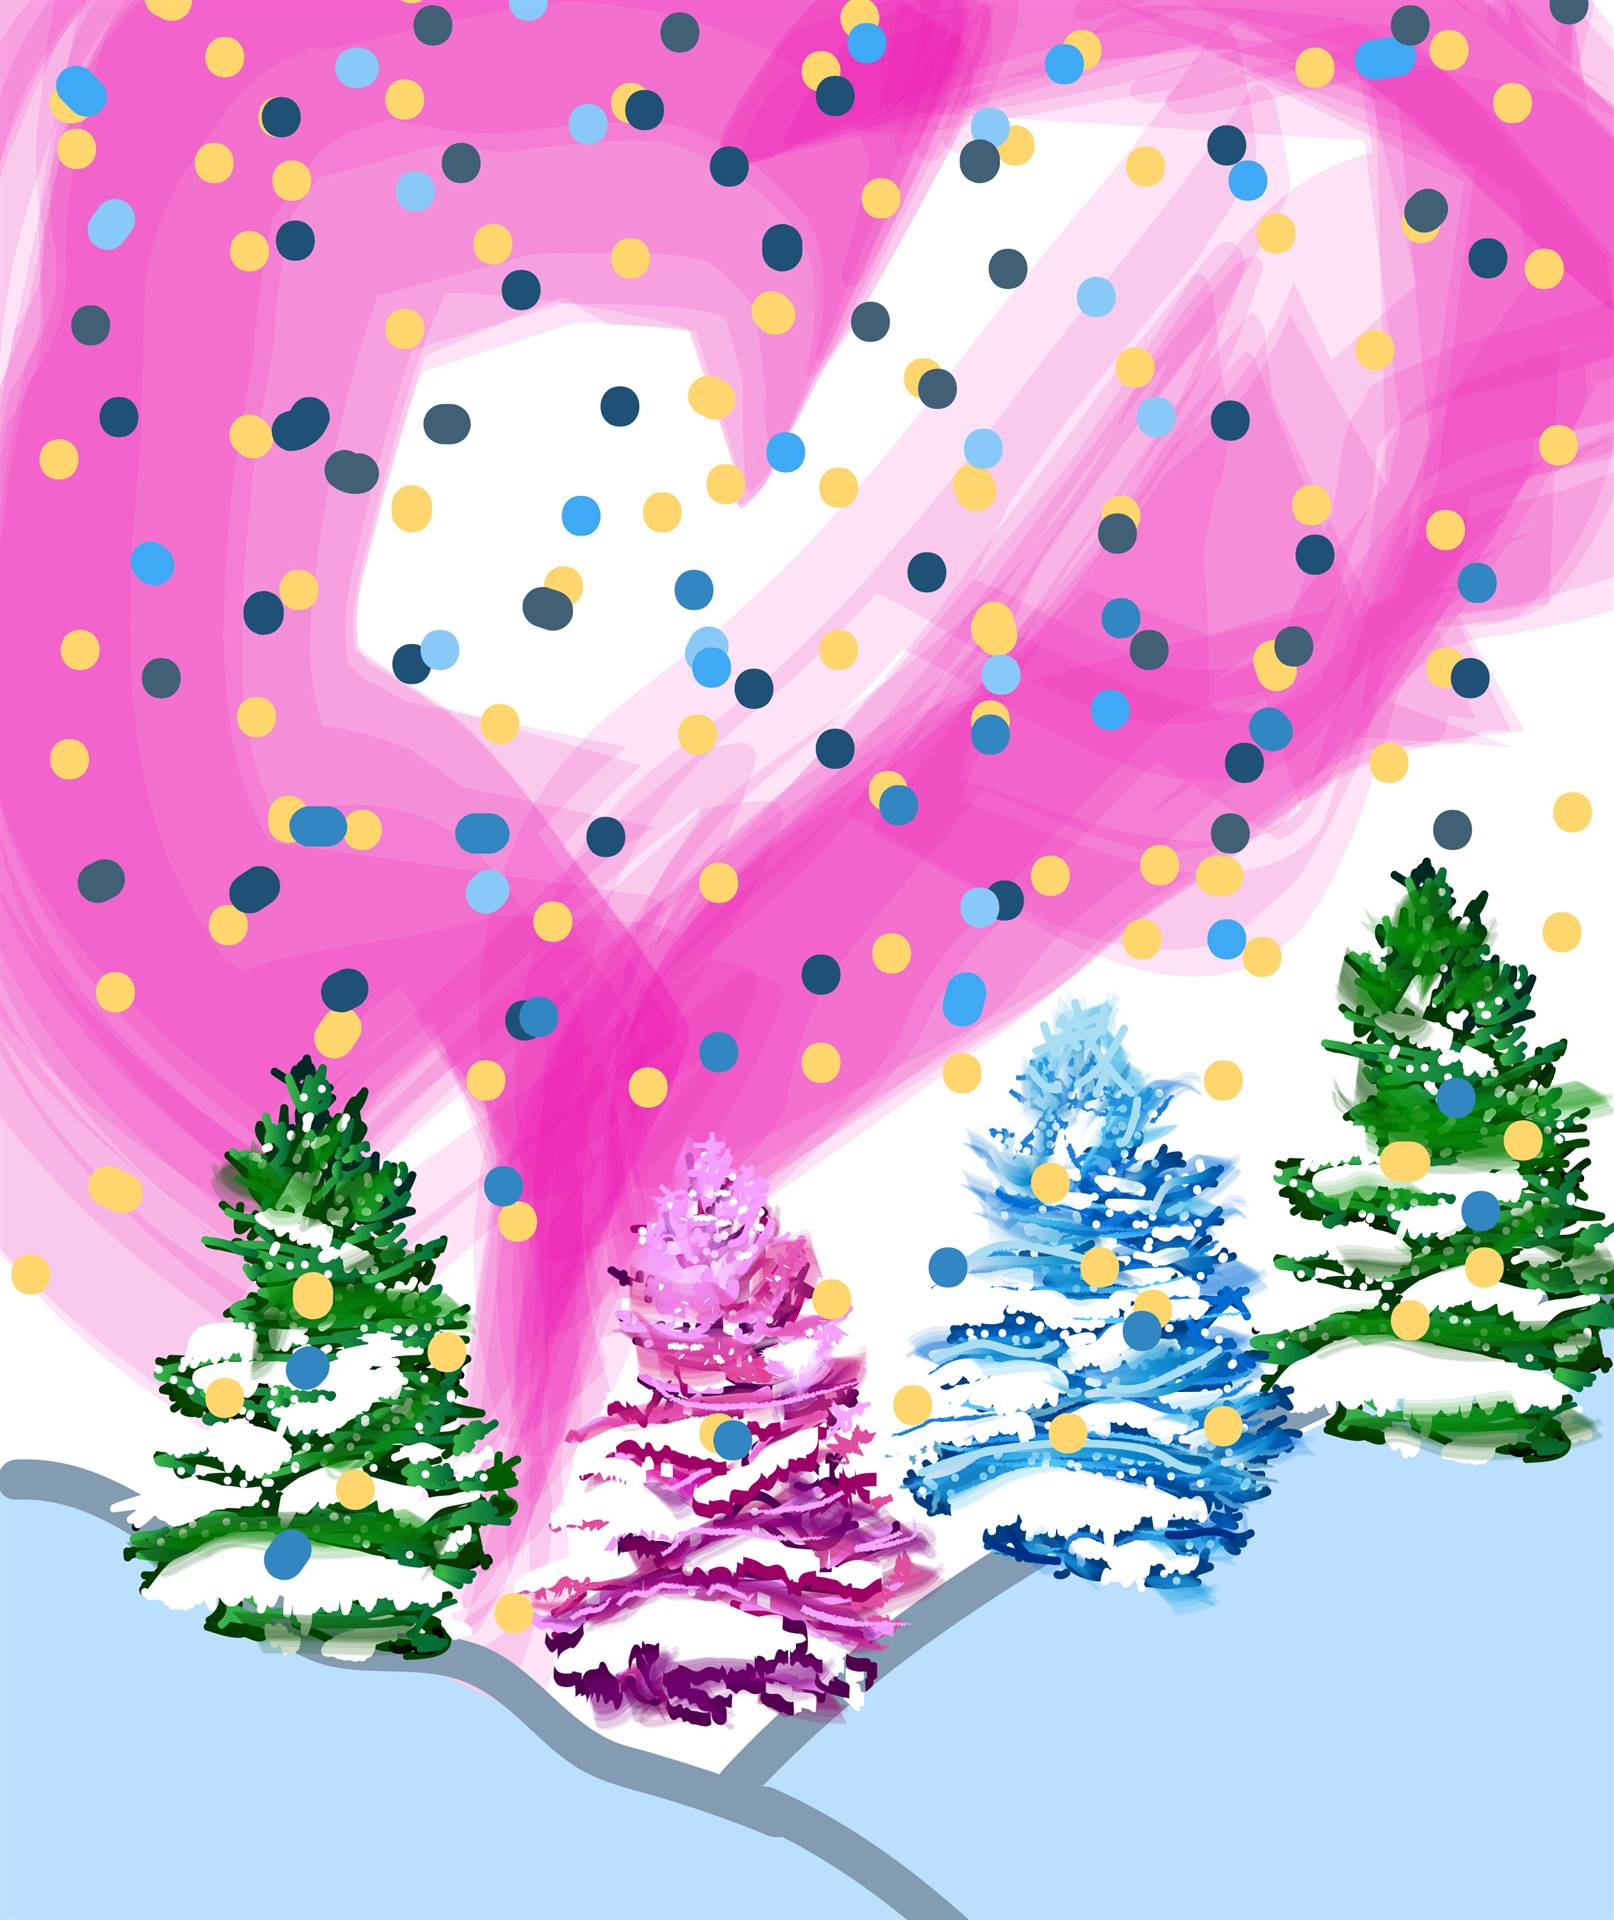 Holiday Card with Pink Northern Lights